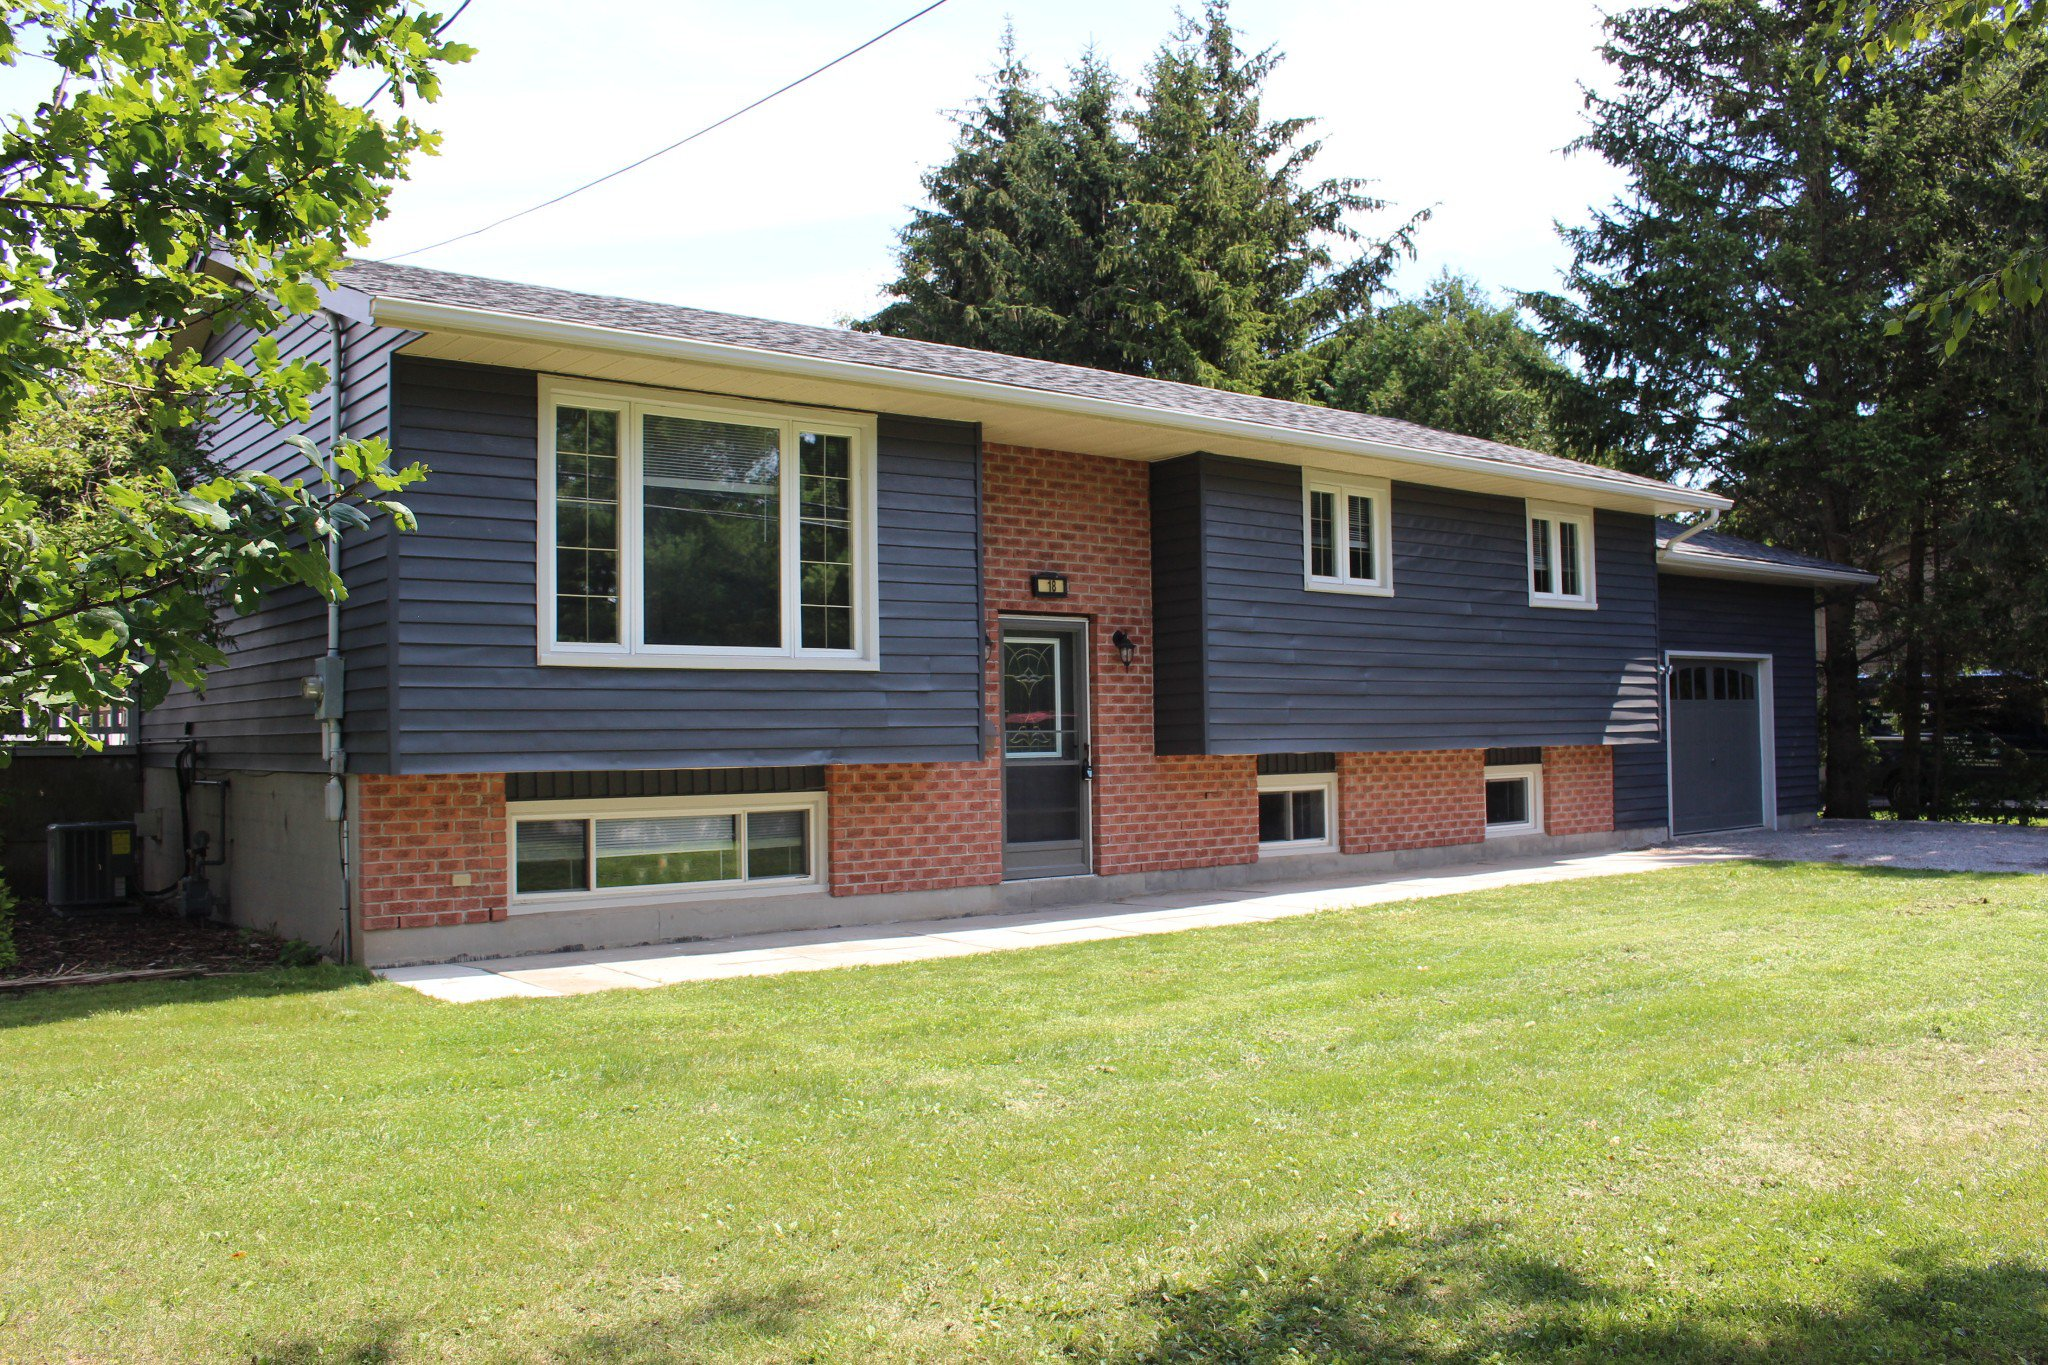 Main Photo: 18 Maplewood Boulevard in Cobourg: Residential Detached for sale : MLS®# 40009417